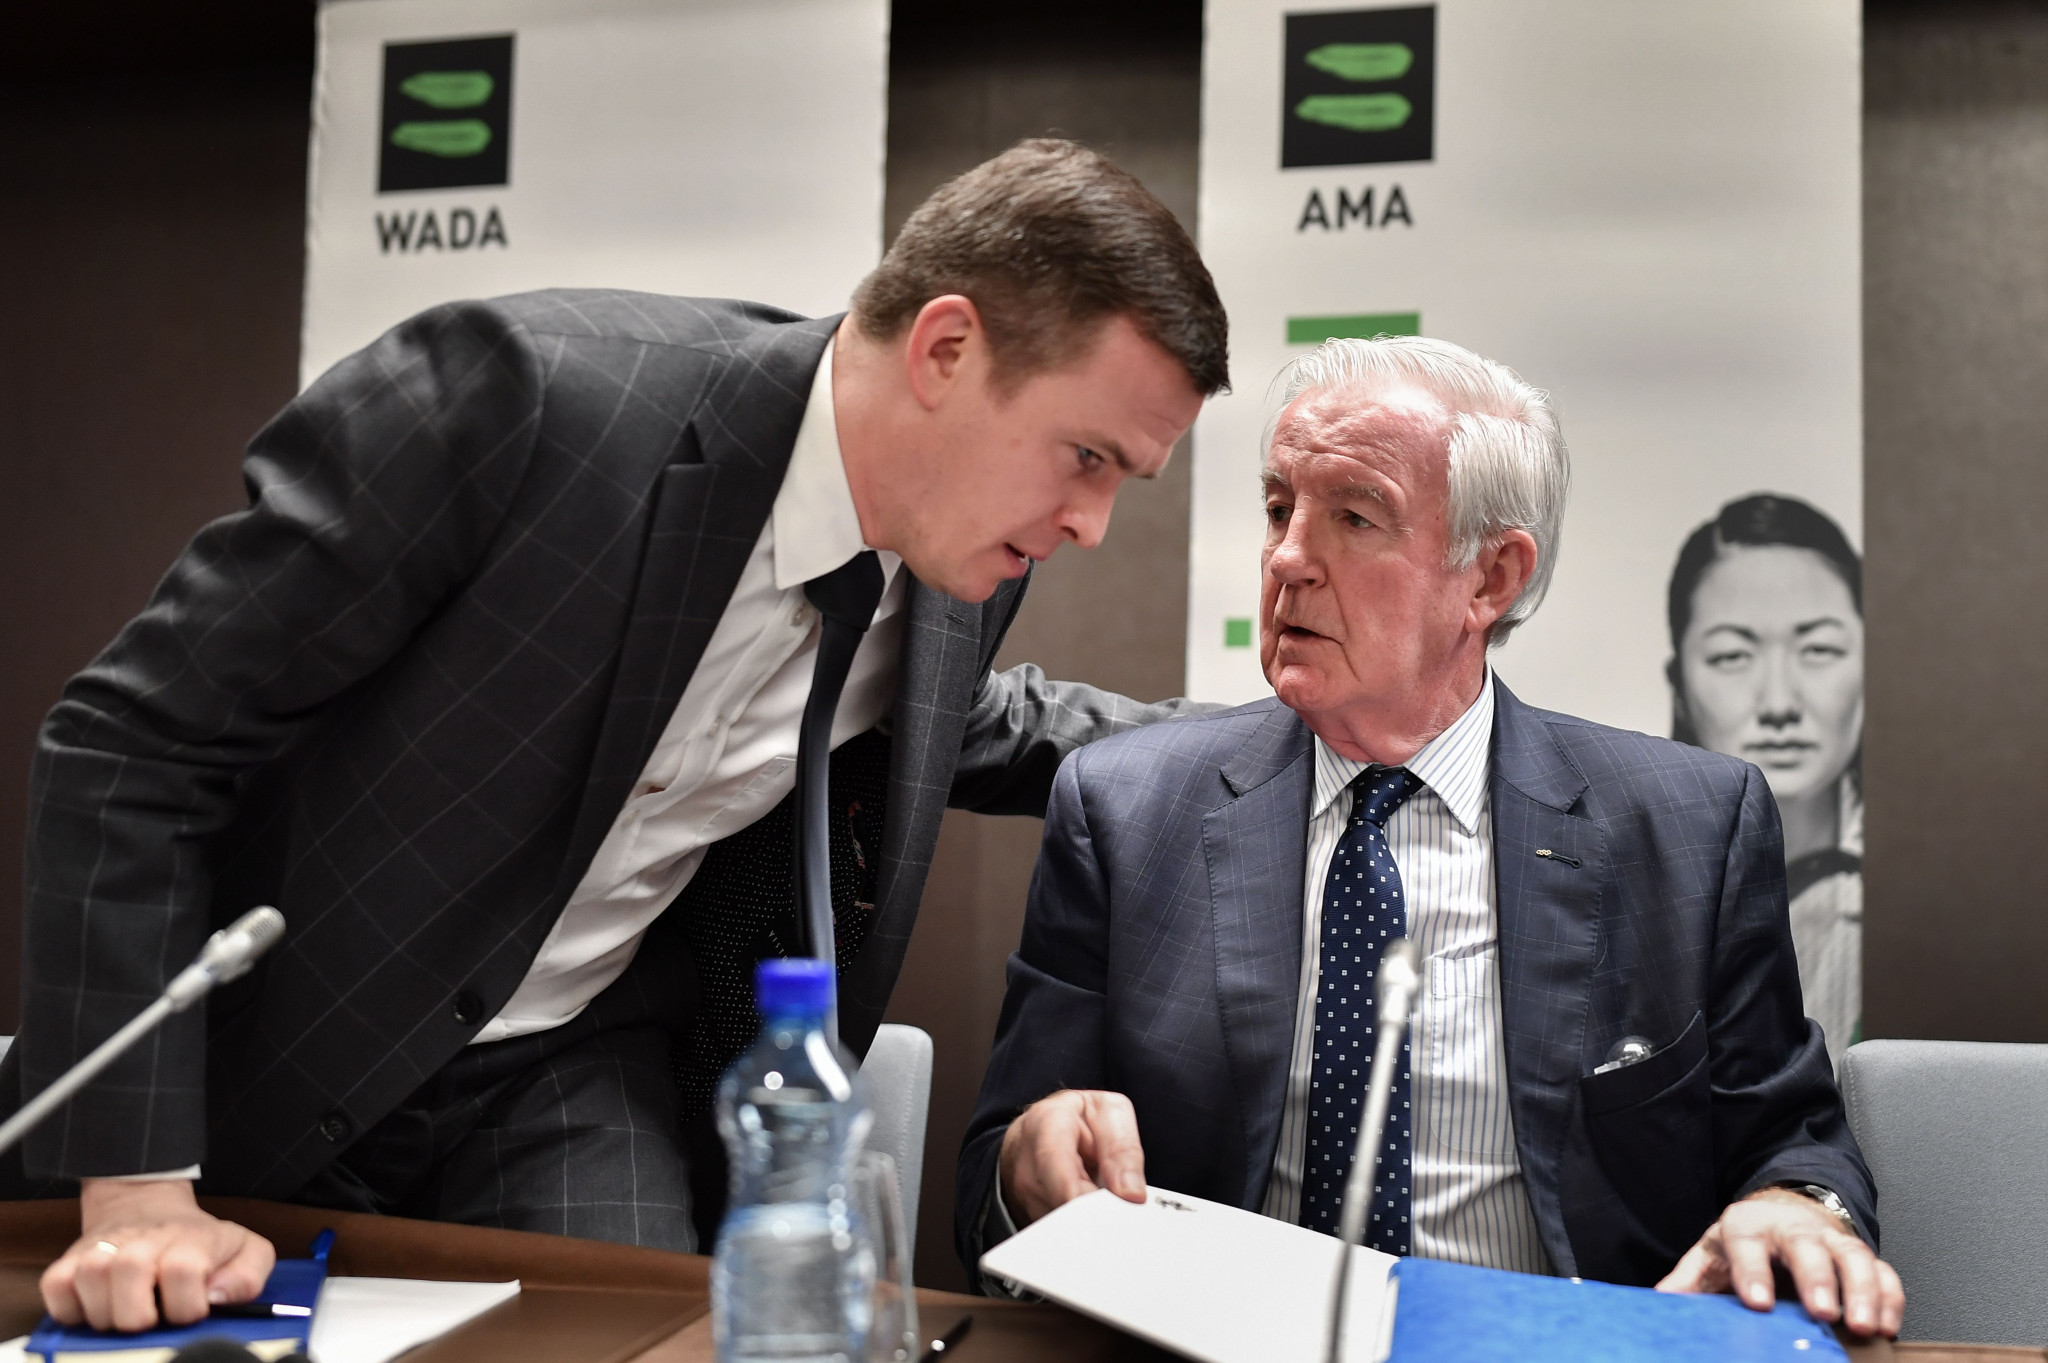 Witold Bańka takes over from Sir Craig Reedie as WADA President from January 1 ©Getty Images